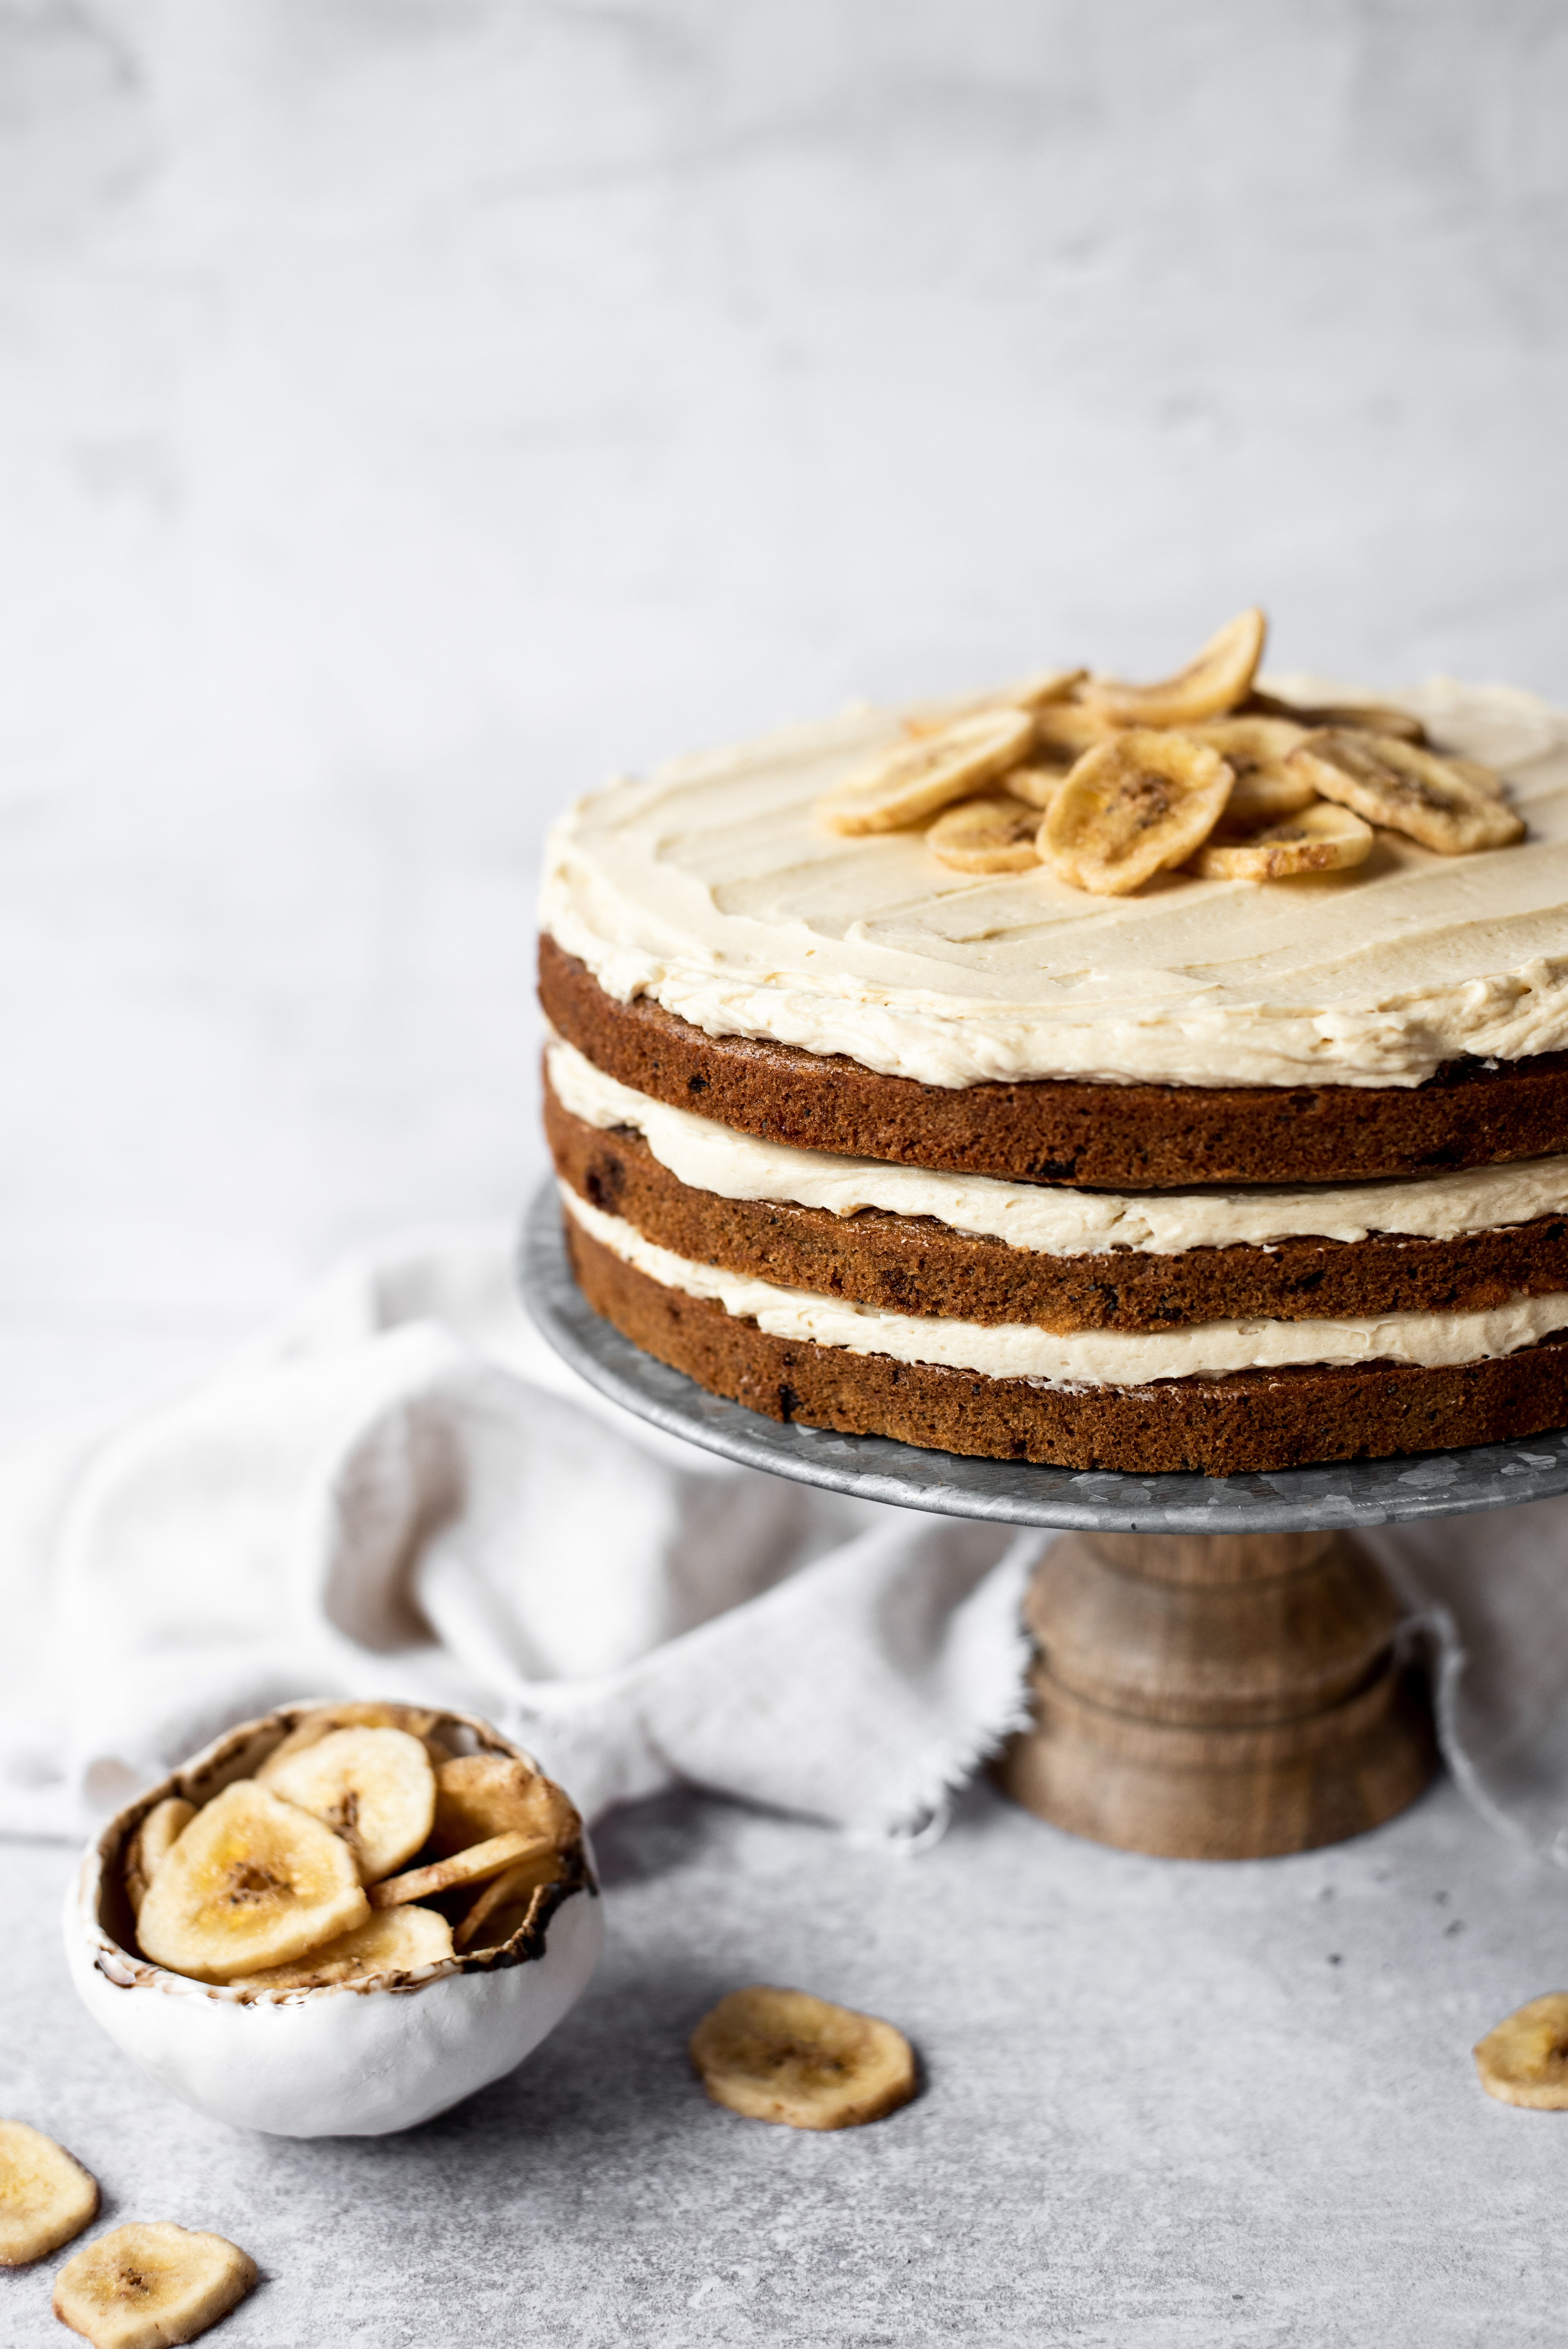 Banana Layer Cake with three layers on a cake stand with a bowl of banana chips